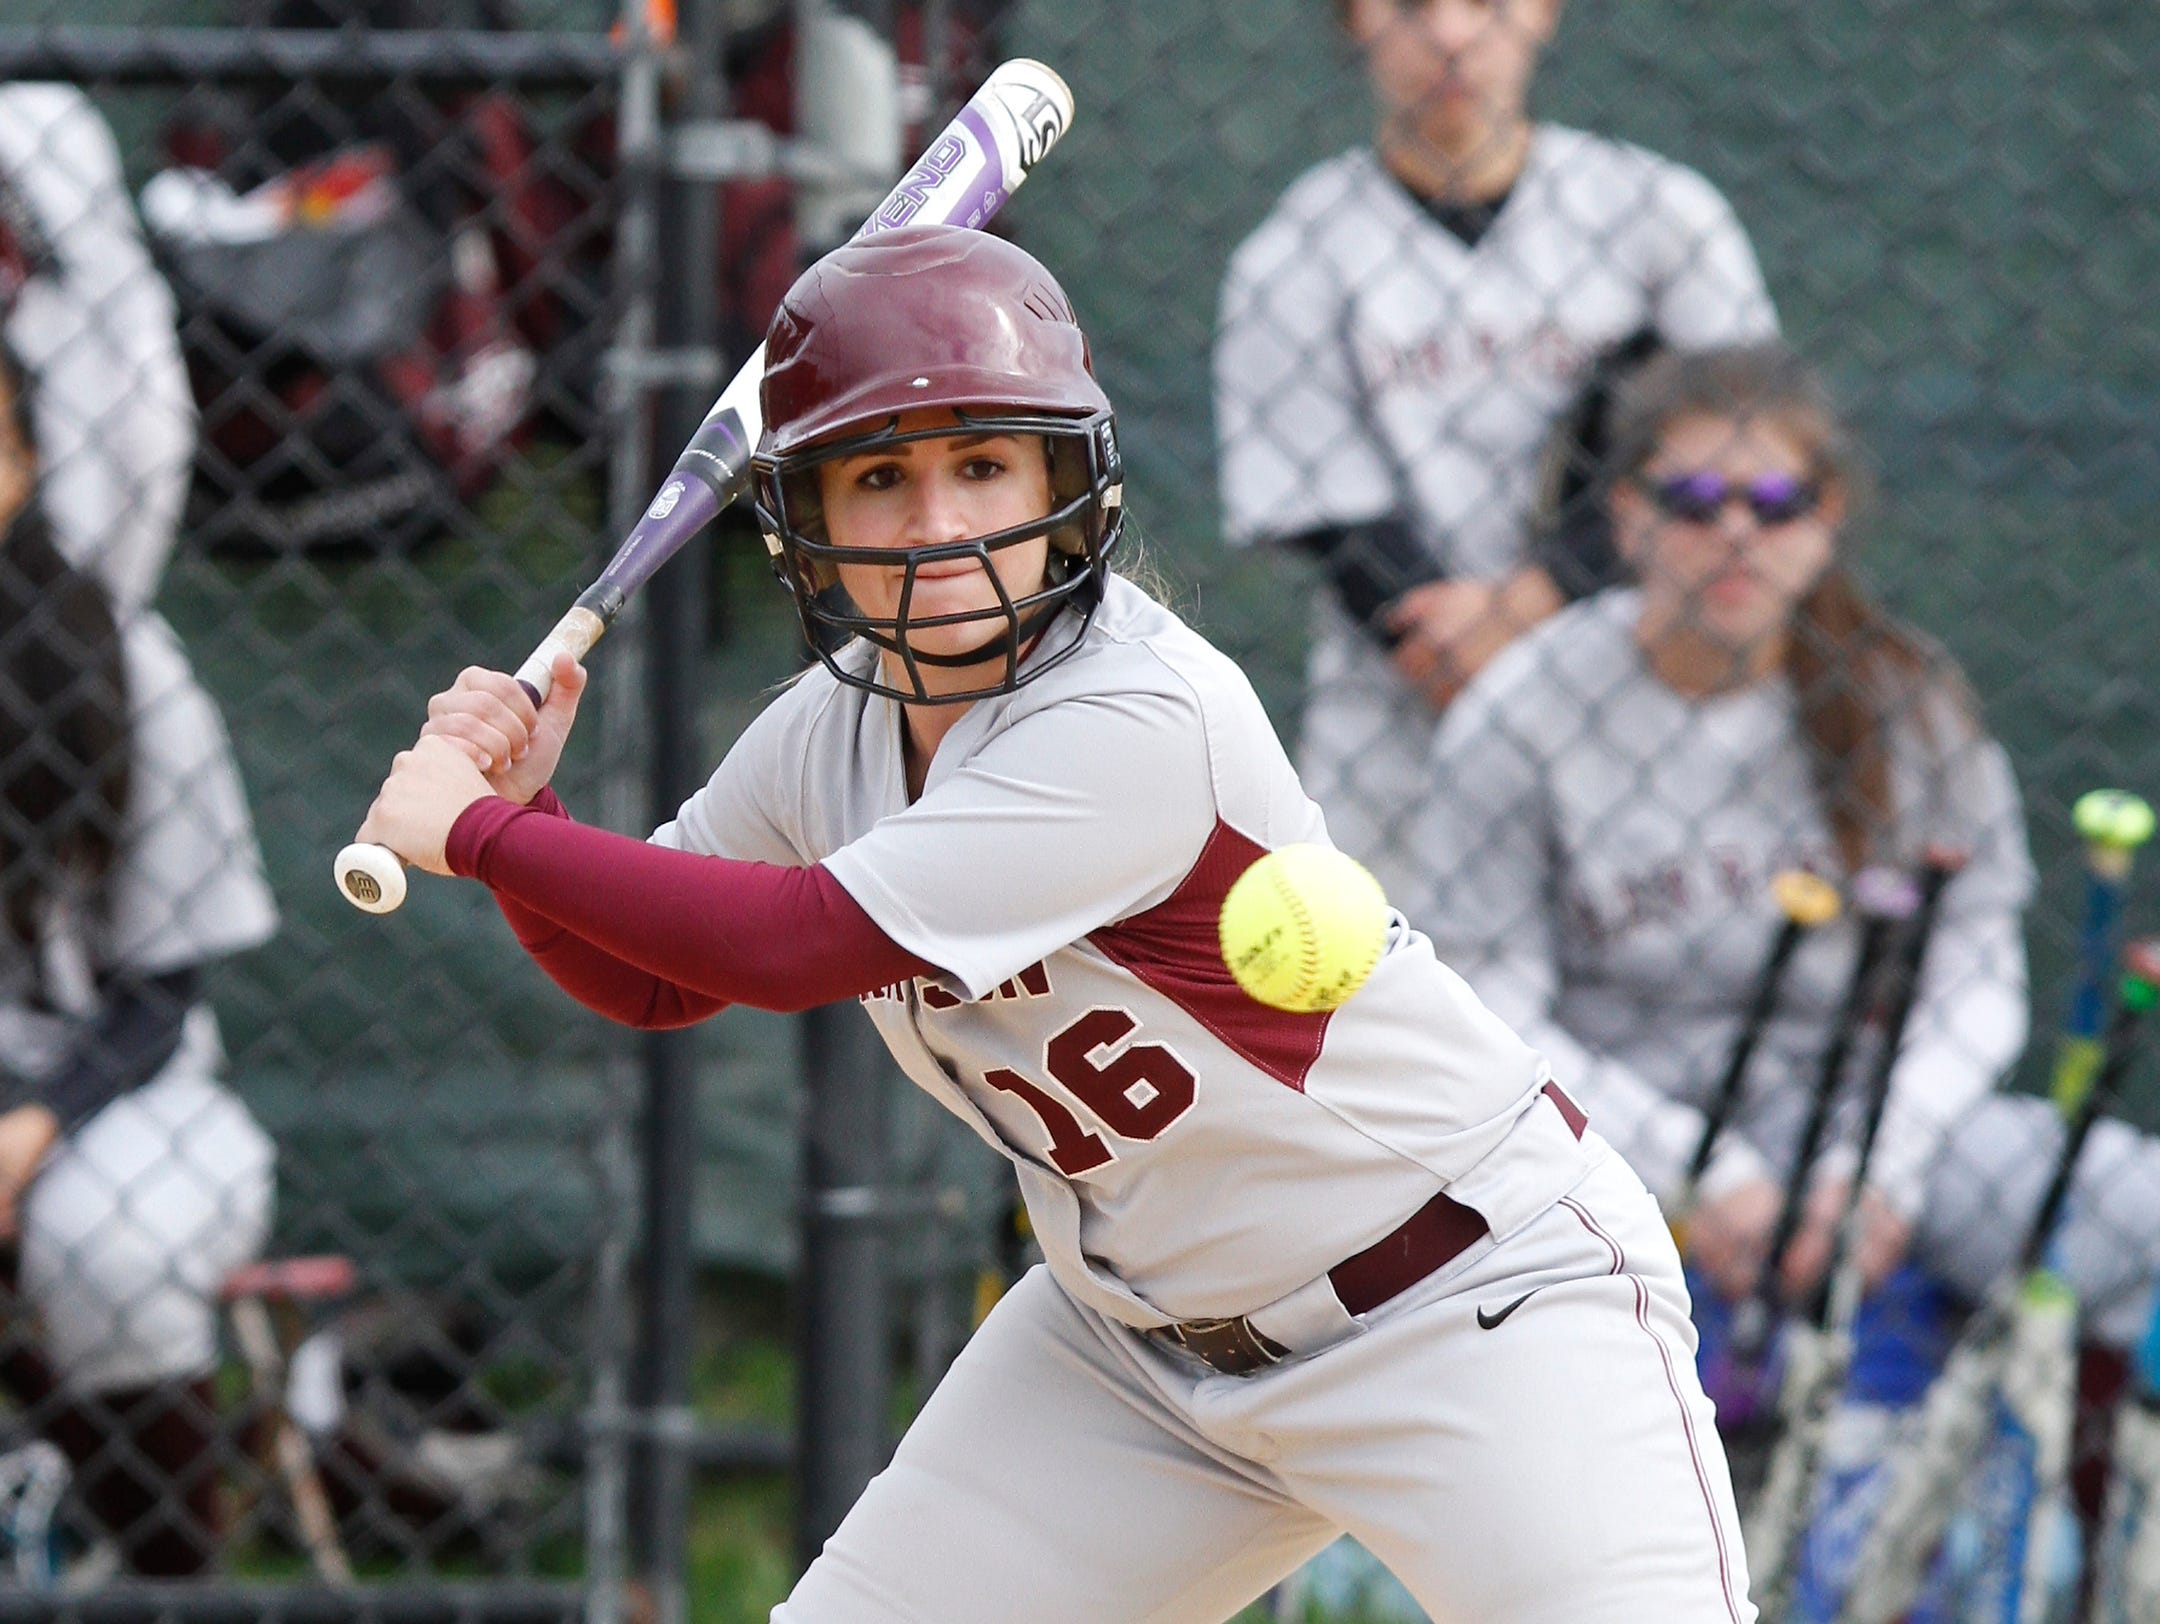 Harrison tops Eastchester 8 - 5 in a varsity softball game at Harrison High School on Thursday, April 28, 2016.